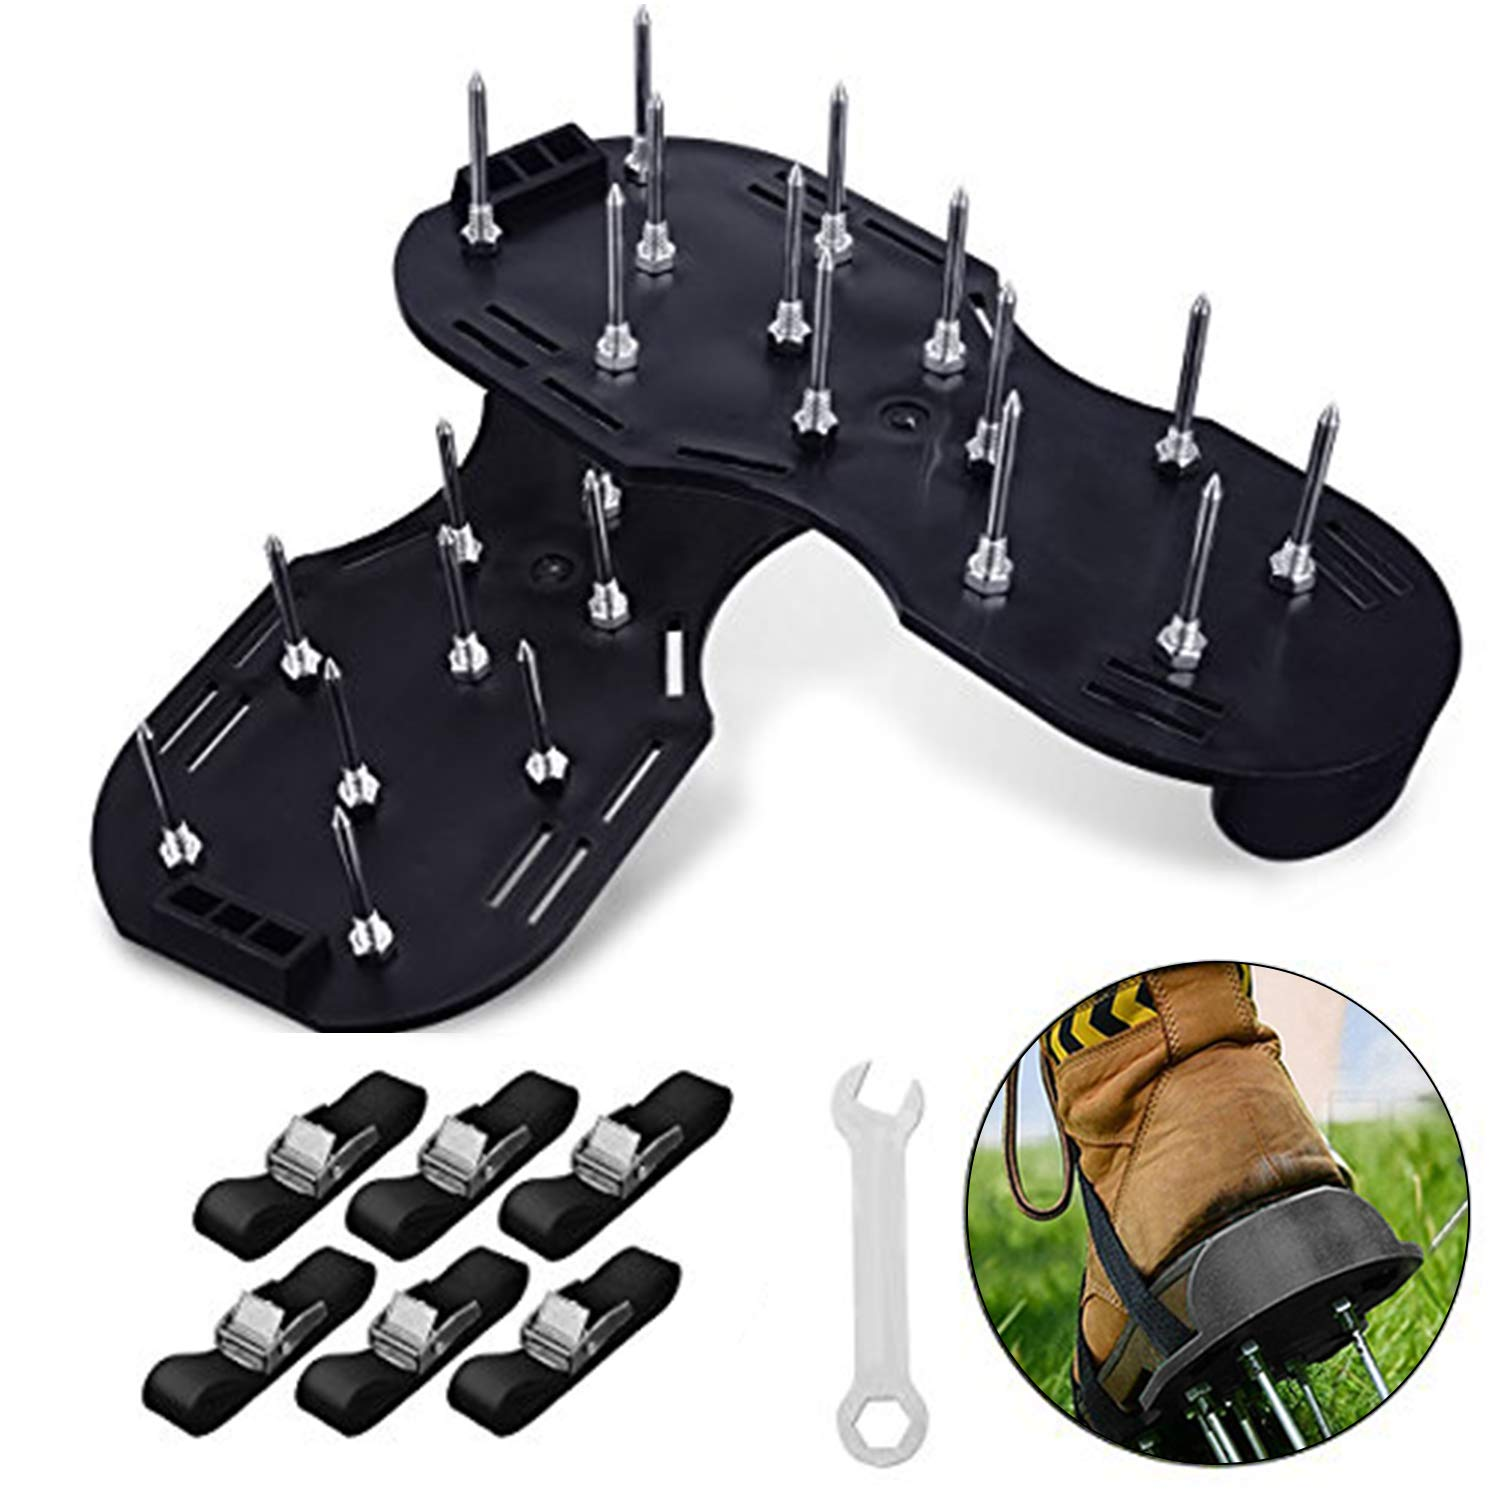 GoTravel2 Lawn Aerator Shoes, Heavy Duty Spiked Sandals for Aerating Lawns, 3 Zinc Alloy Buckles and 3 Straps, Spikes and Wrench, Manual Lawn Aerator Saddles for Aerating Your Lawn or Yard (Black)